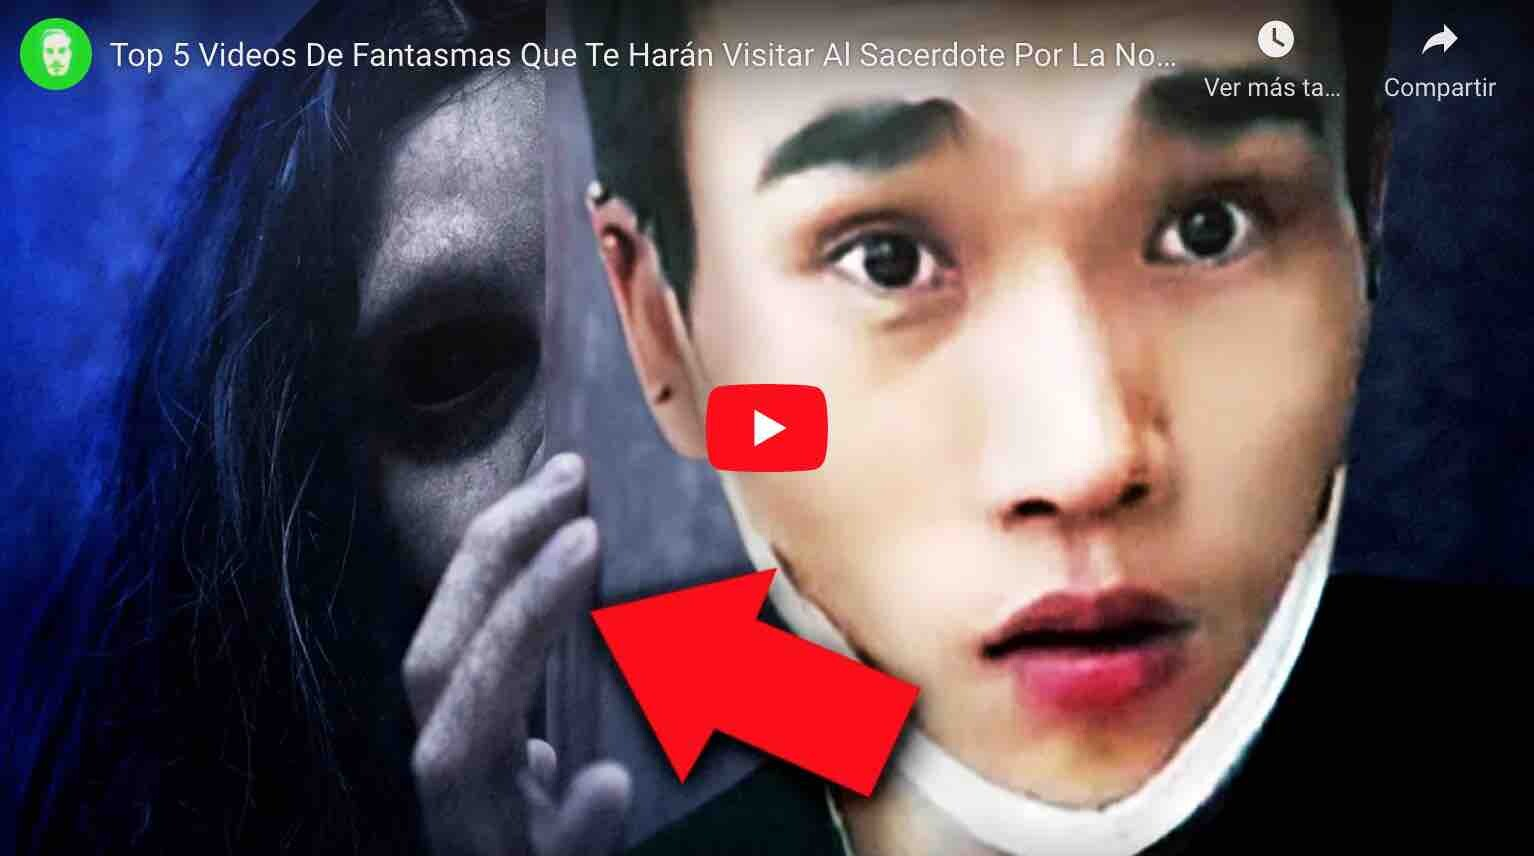 VIDEO: Top 5 Videos de Fantasmas Captados en Cámara